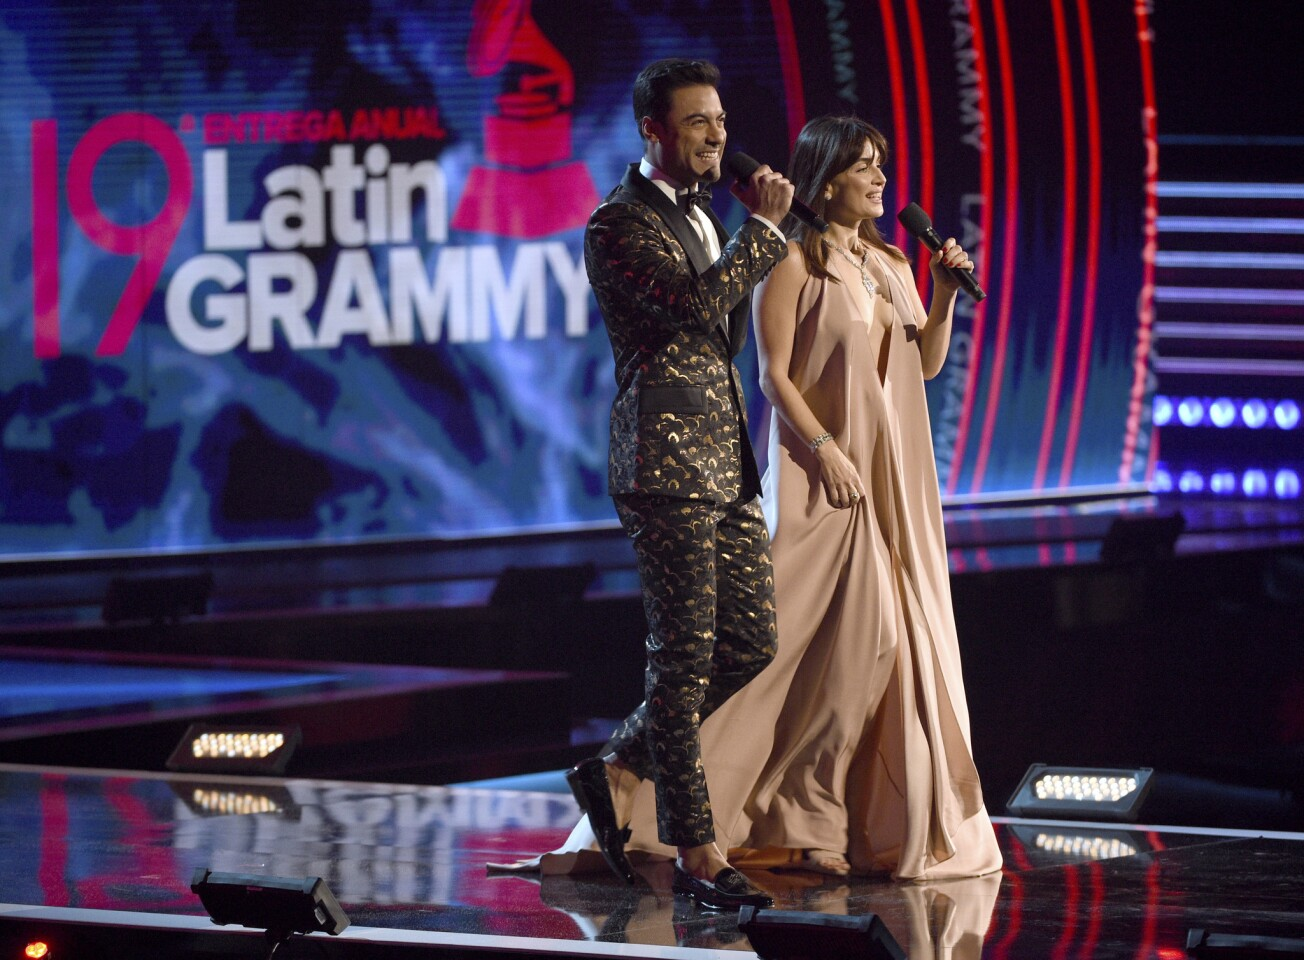 Hosts Carlos Rivera, left, and Ana De La Reguera speak at the Latin Grammy Awards at the MGM Grand Garden Arena in Las Vegas.